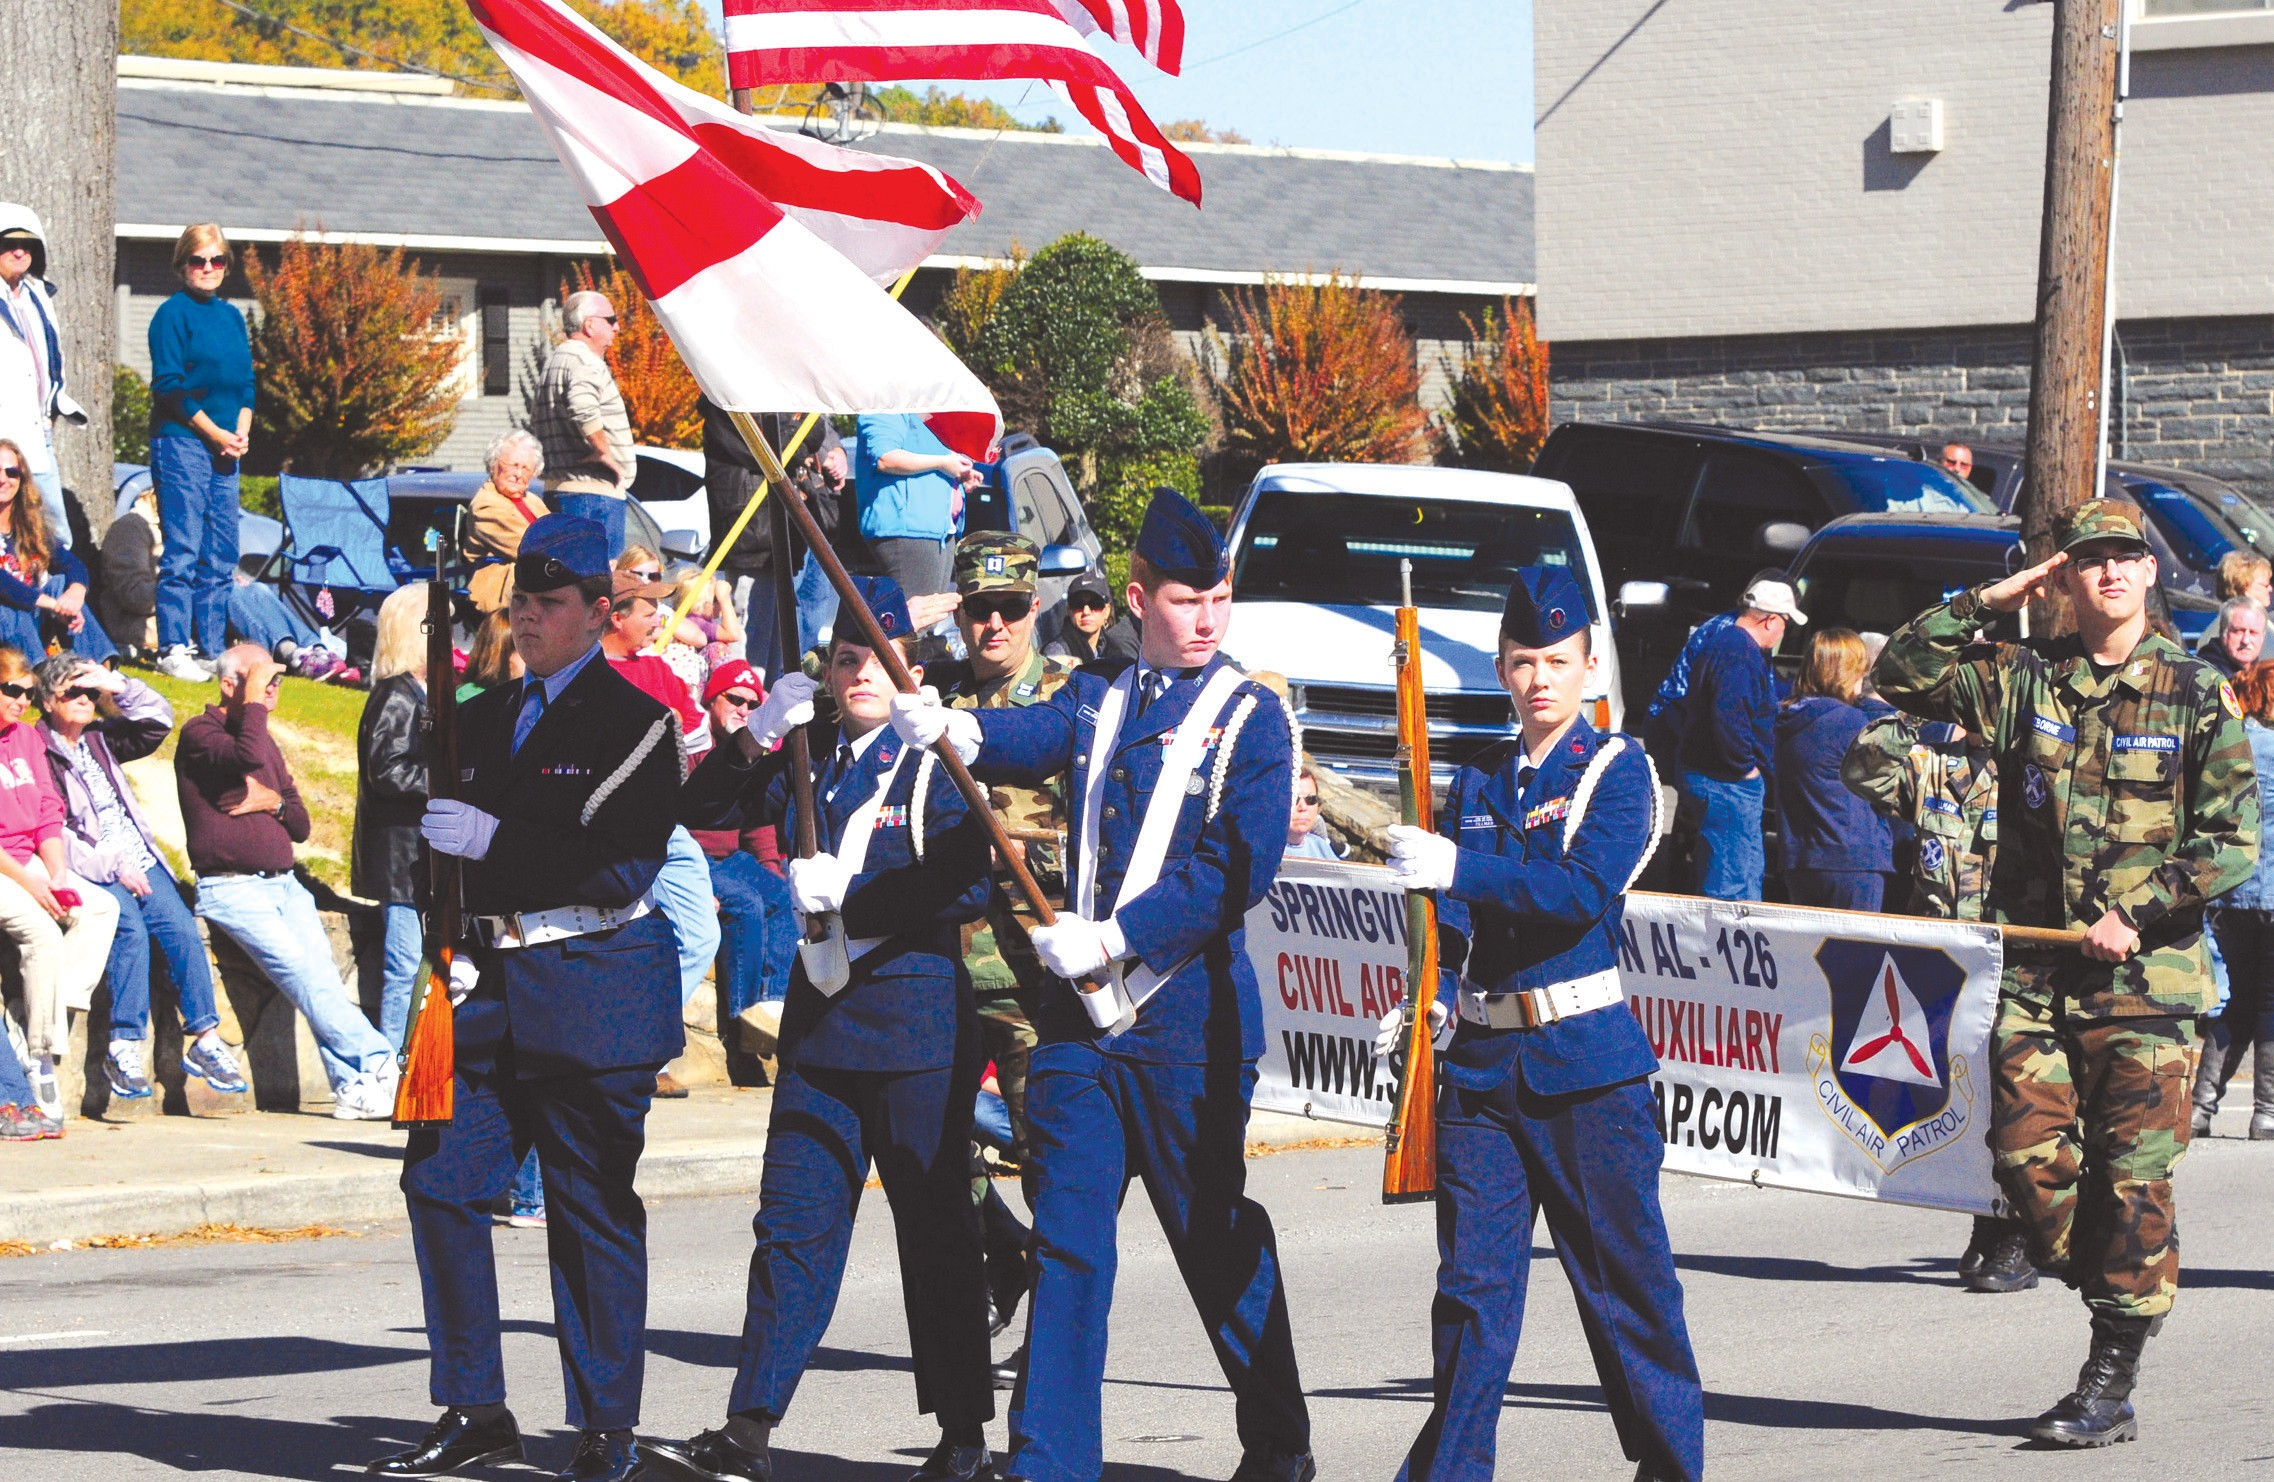 Big crowds lined the streets of Oneonta along the route of the Blount County Veterans Day Parade Saturday. Almost 40 entries and five high school bands participated in this year's event, honoring those who served – and are serving – our country. The annual event is sponsored by Operation Grateful Heart. Walt Whitman said it best of veterans in his poem, 'A Nation's Strength' – 'Not gold, but only man can make, A people great and strong; Men who, for truth and honor's sake, Stand fast and suffer long. Brave men who work while others sleep, Who dare while others fly – They build a nation's pillars deep, And lift them to the sky.' - Rob Rice